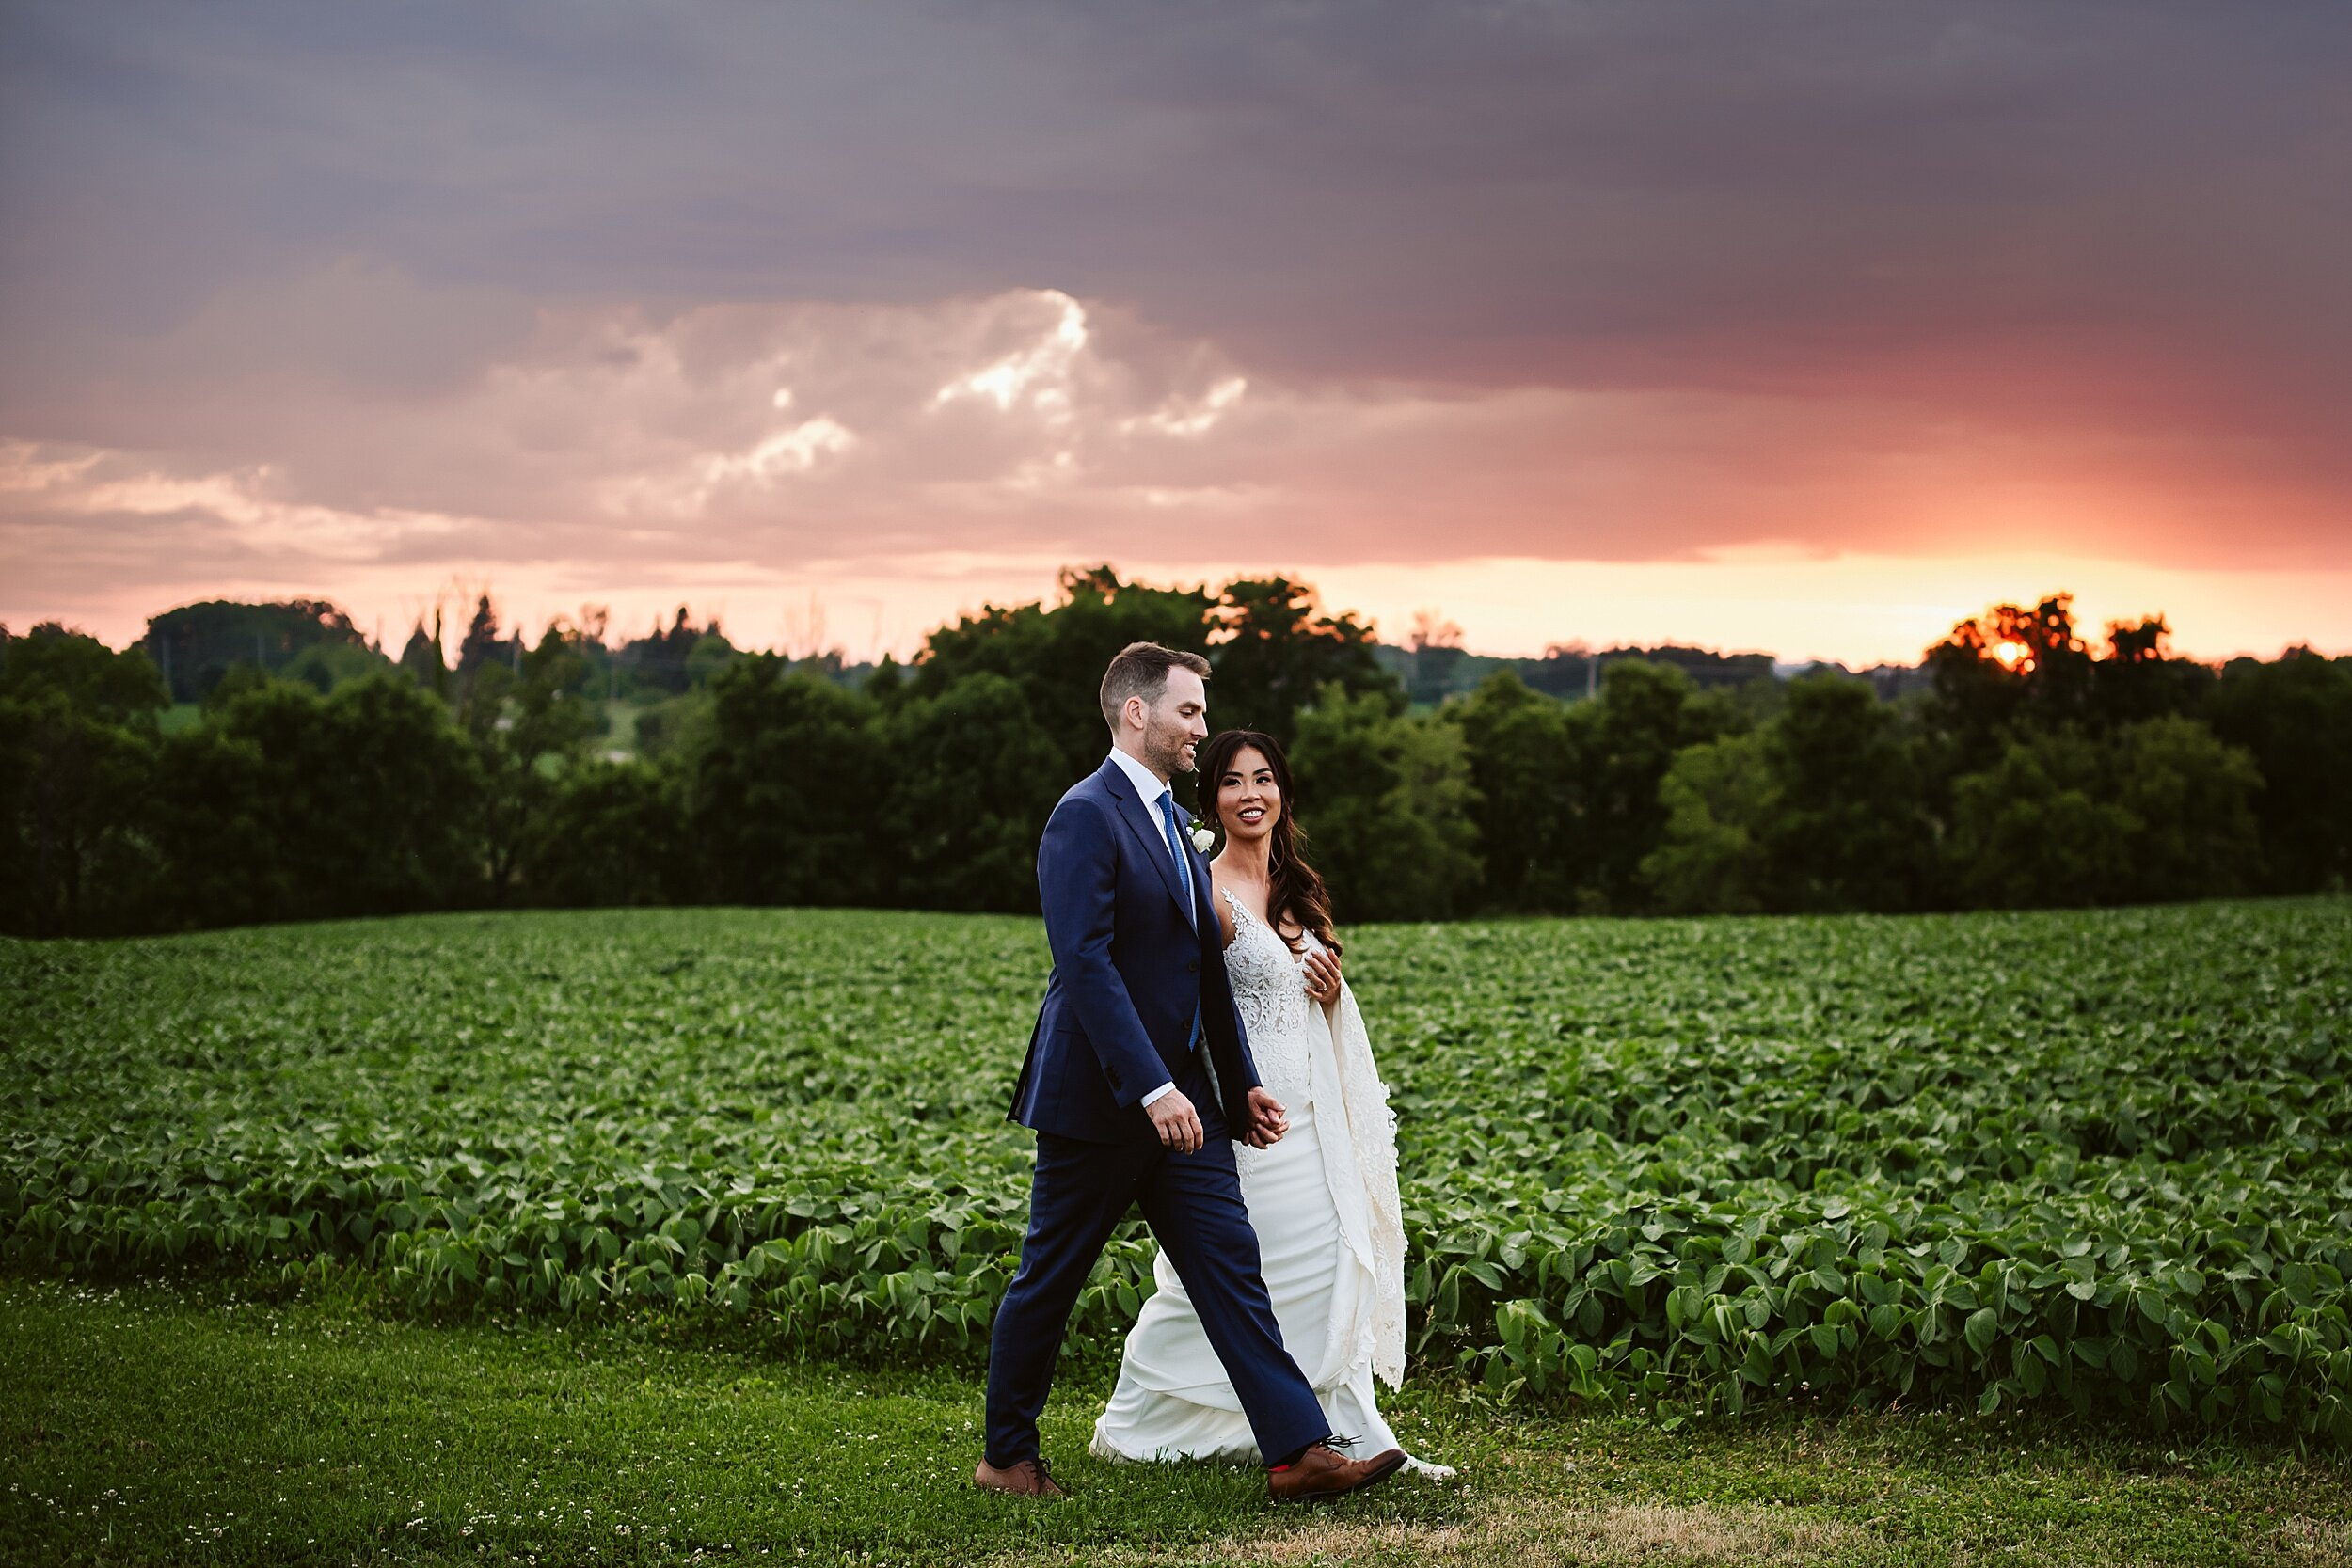 Glen_Drummon_Farm_Wedding_Toronto_Photographers_Fox_Photography_Dyments_0058.jpg